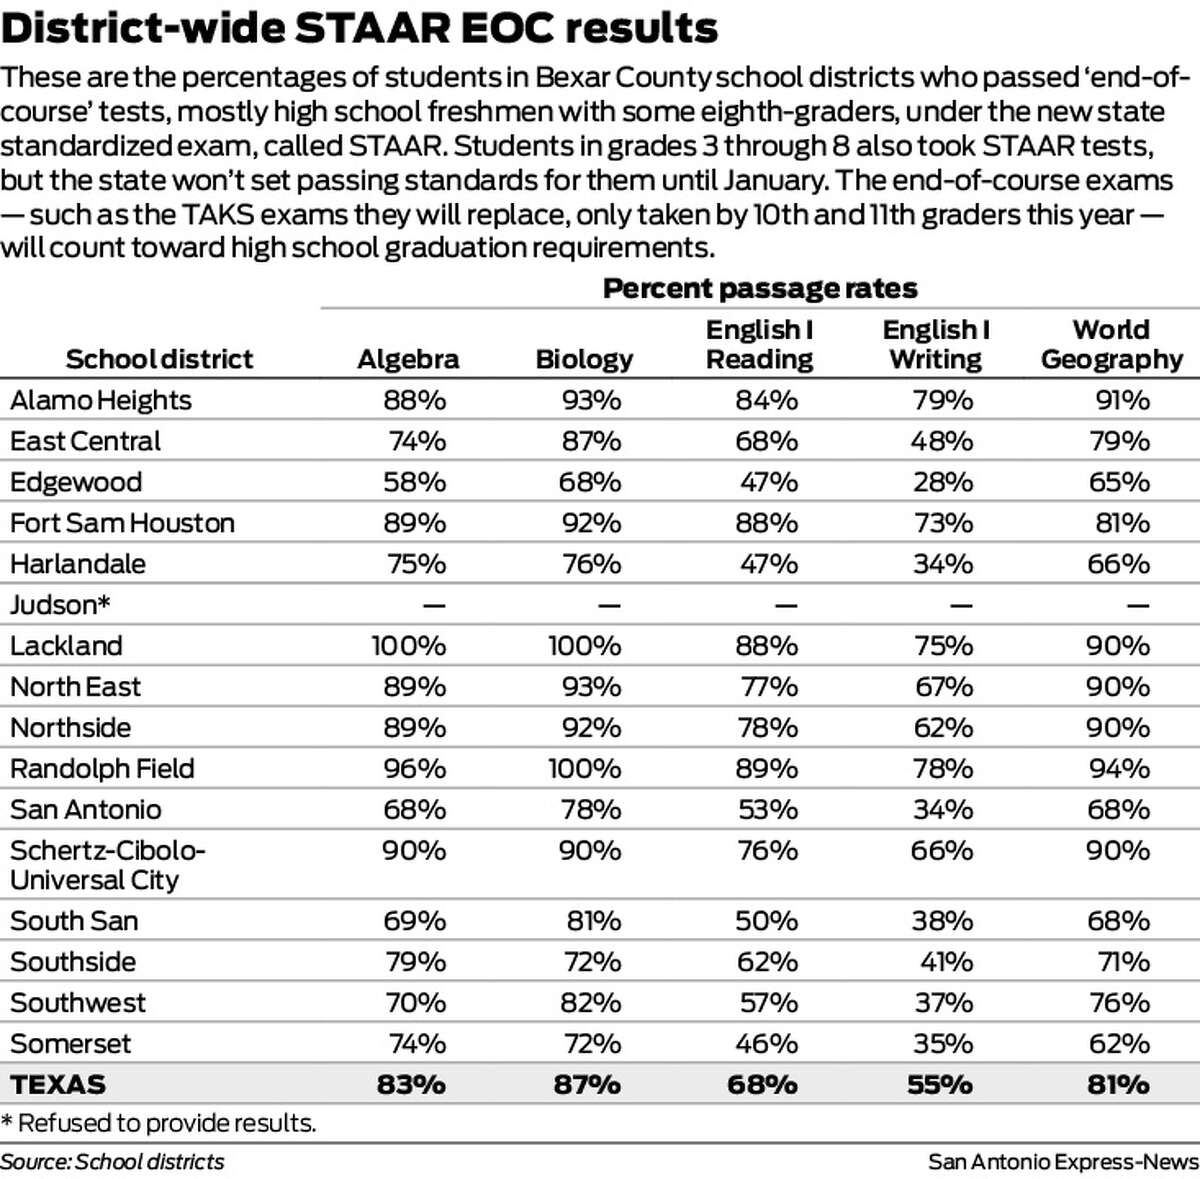 These are the percentages of students in Bexar County school districts who passed 'end-of-course' tests, mostly high school freshmen with some eighth-graders, under the new state standardized exam, called STAAR. Students in grades 3 through 8 also took STAAR tests, but the state won't set passing standards for them until January. The end-of-course exams - such as the TAKS exams they will replace, only taken by 10th and 11th graders this year - will count toward high school graduation requirements.